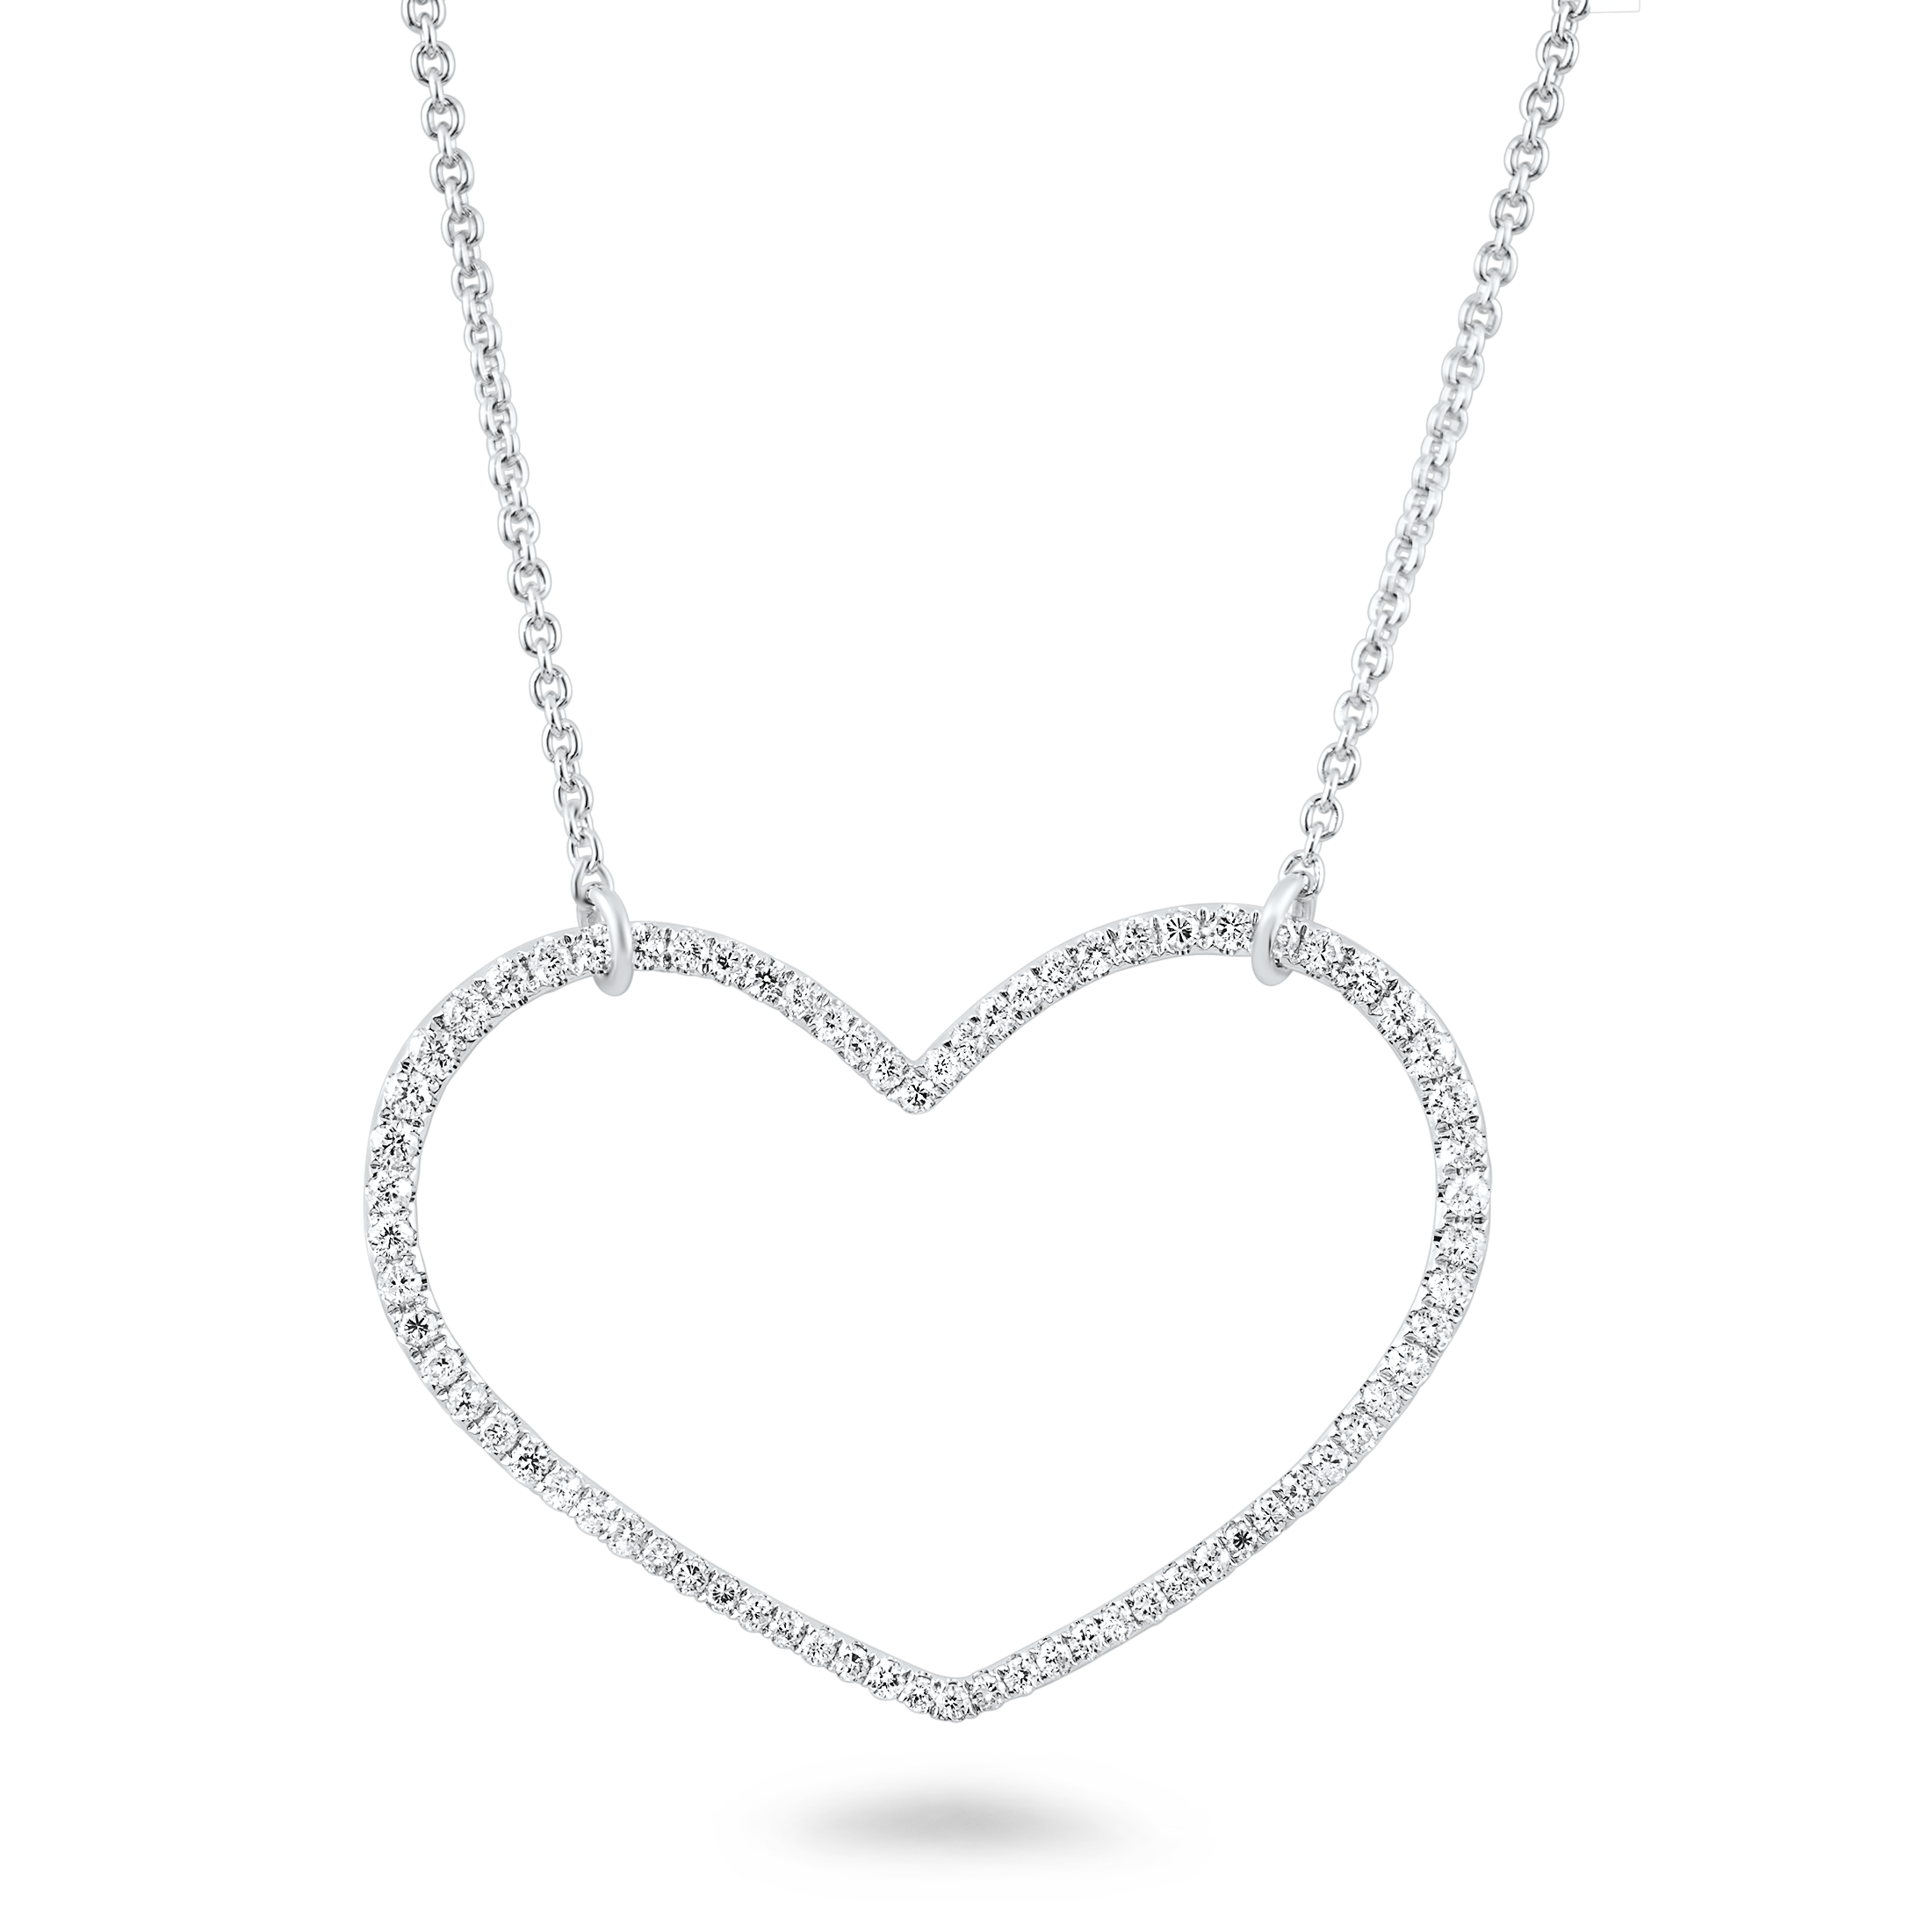 Diamond drawing at getdrawings. Necklace clipart heart shaped locket